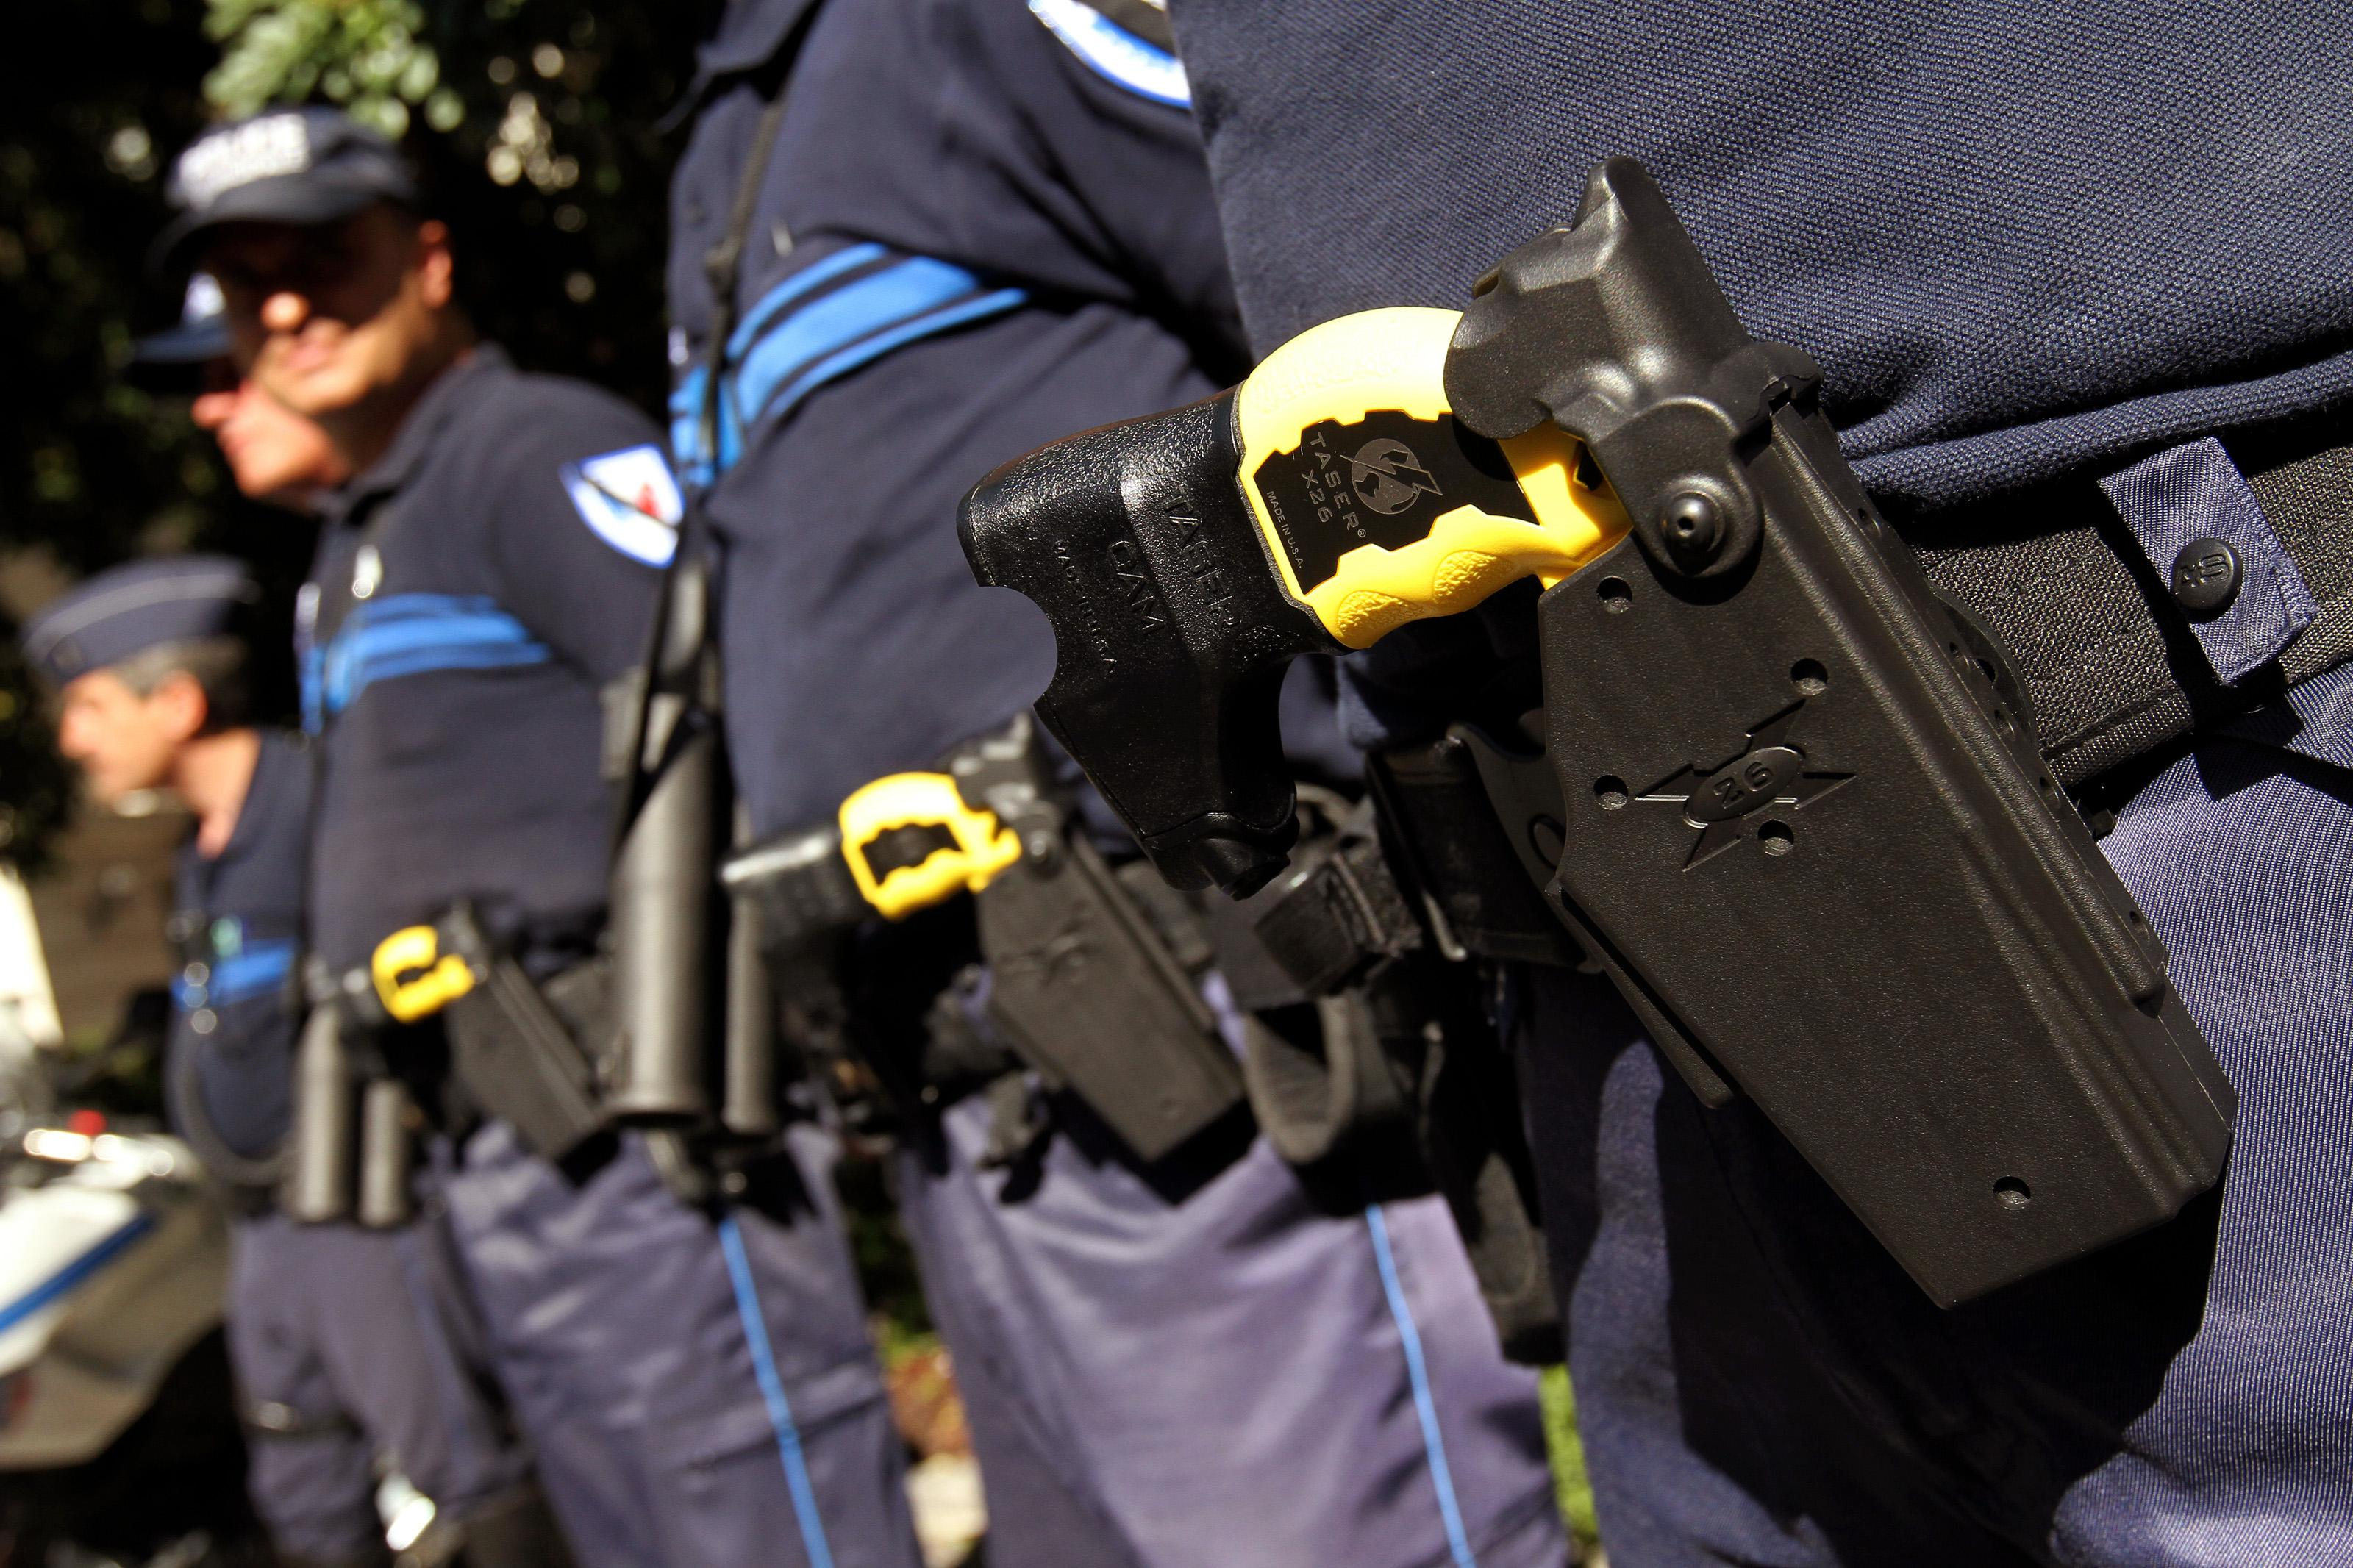 Police pose with Tasers